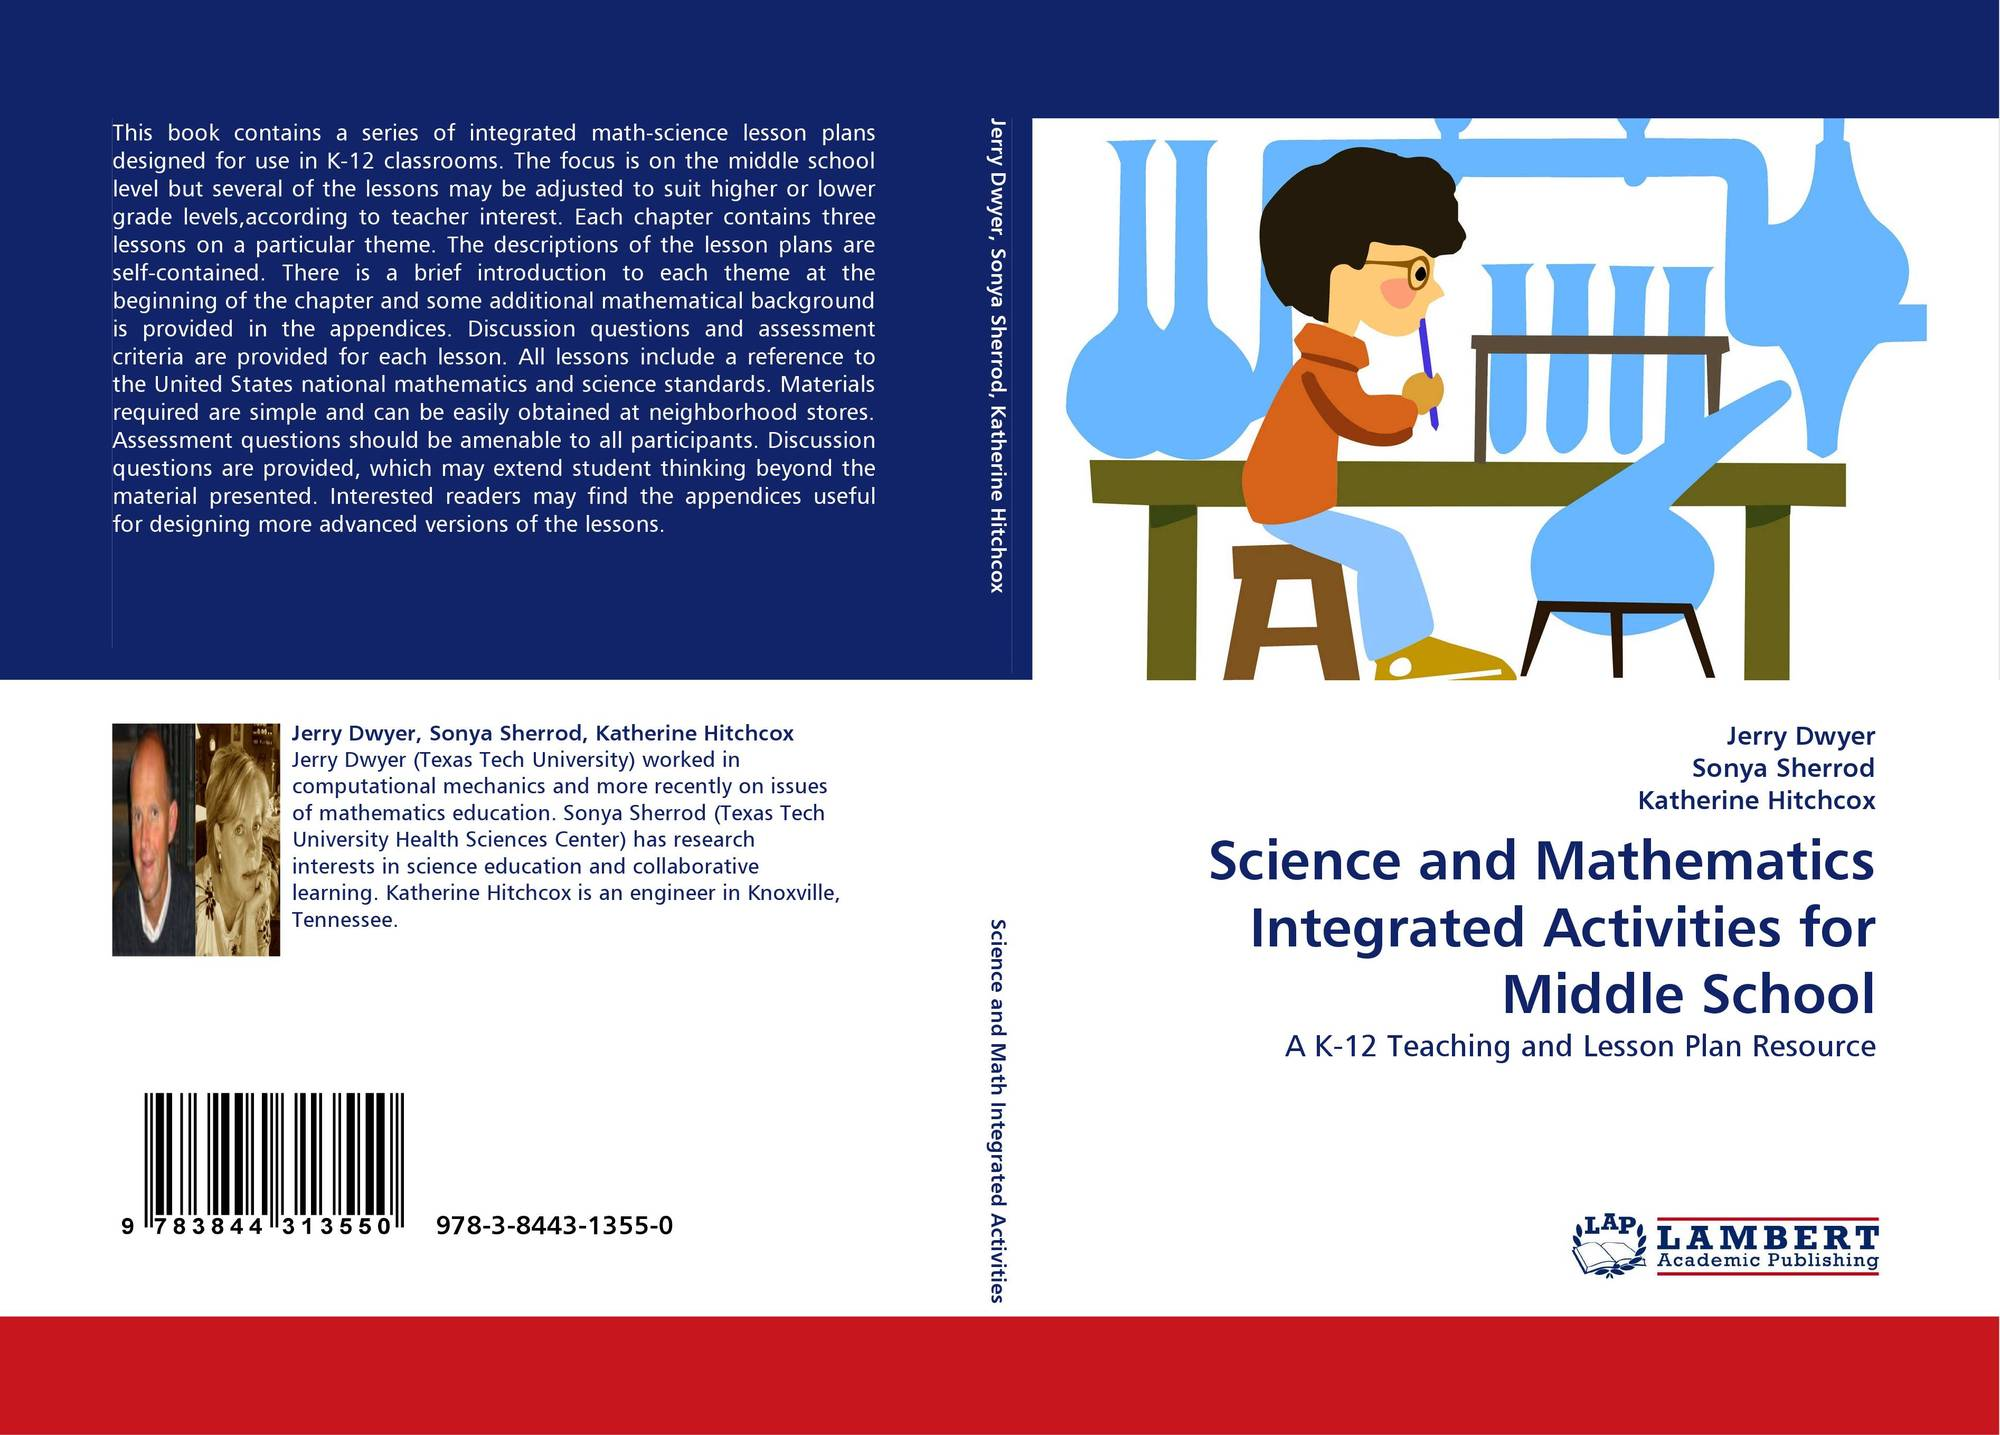 lesson plan integrating math and science Stem lessons apply rigorous math and science content your students are learning in your stem lessons, you should purposely connect and integrate content from math and science courses.